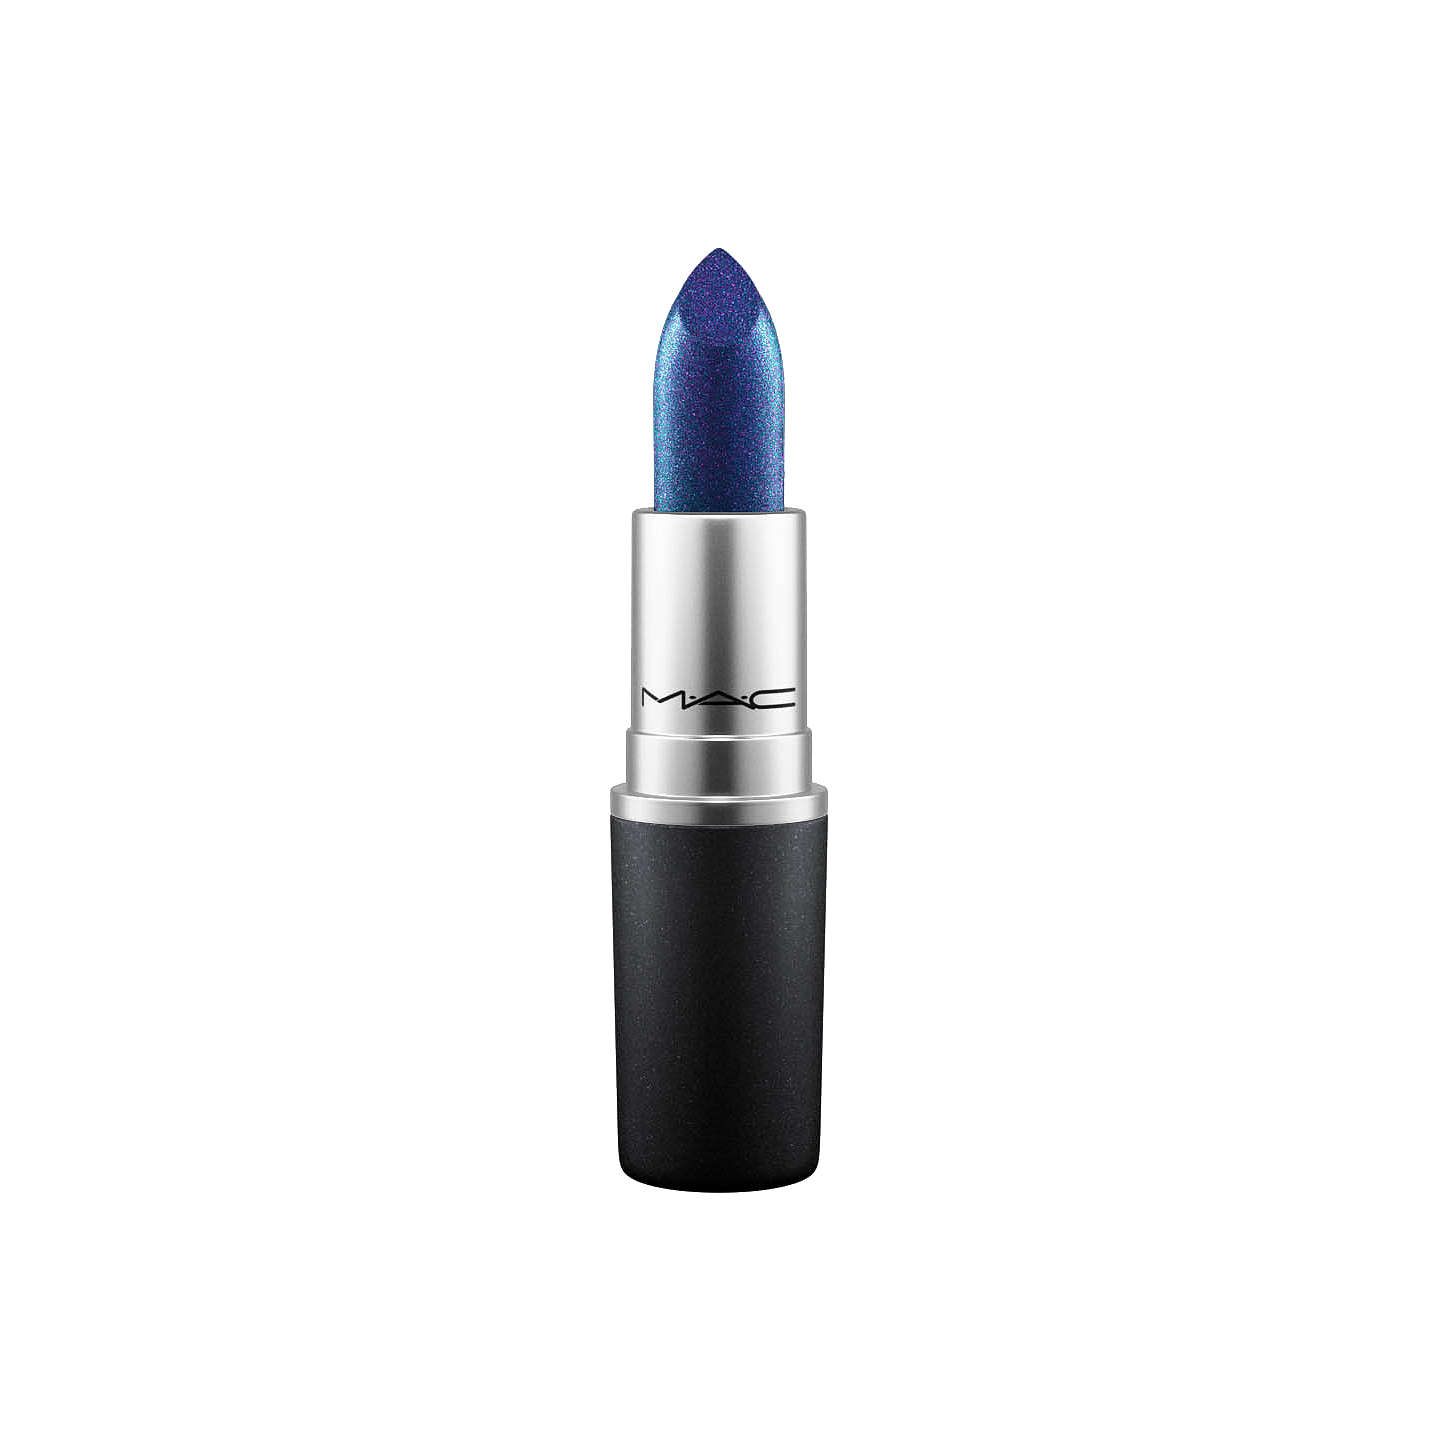 BuyMAC Lipstick - Metallic, Anything Once Online at johnlewis.com